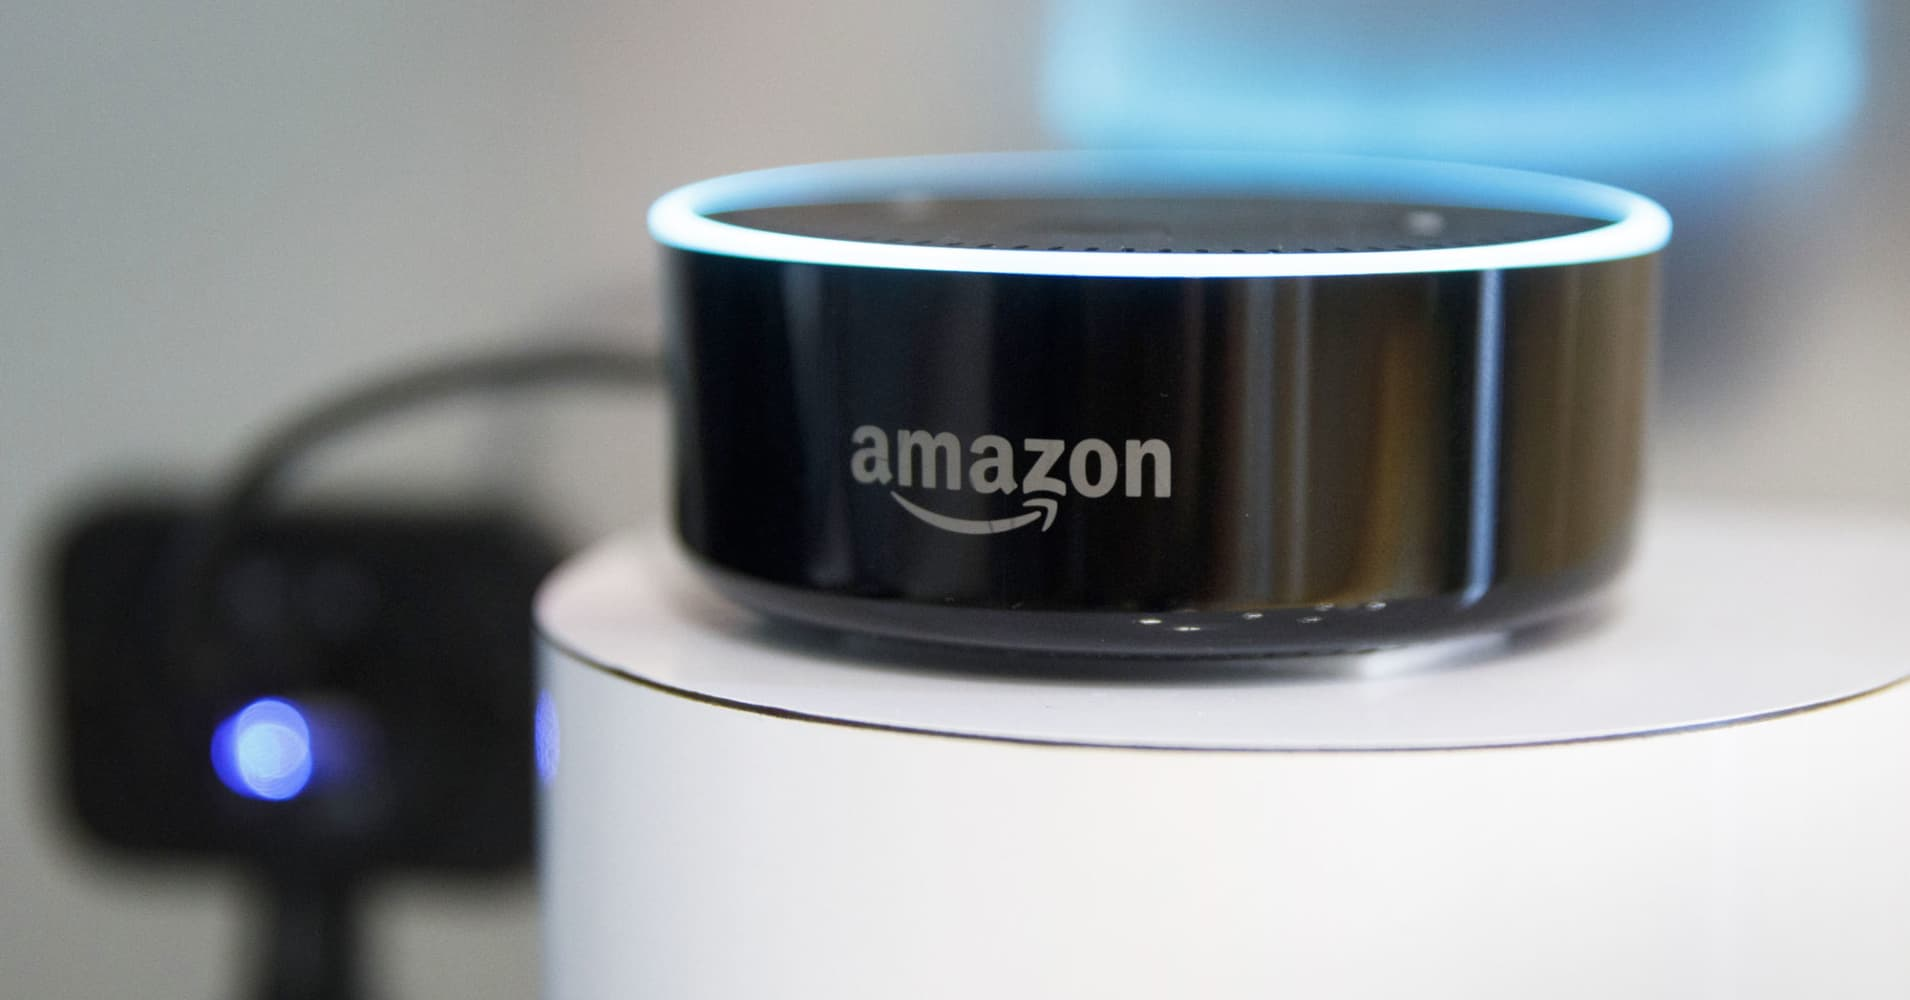 Just bought an Echo? These Top Alexa skills for 2018 will make you smarter, healthier and more productive